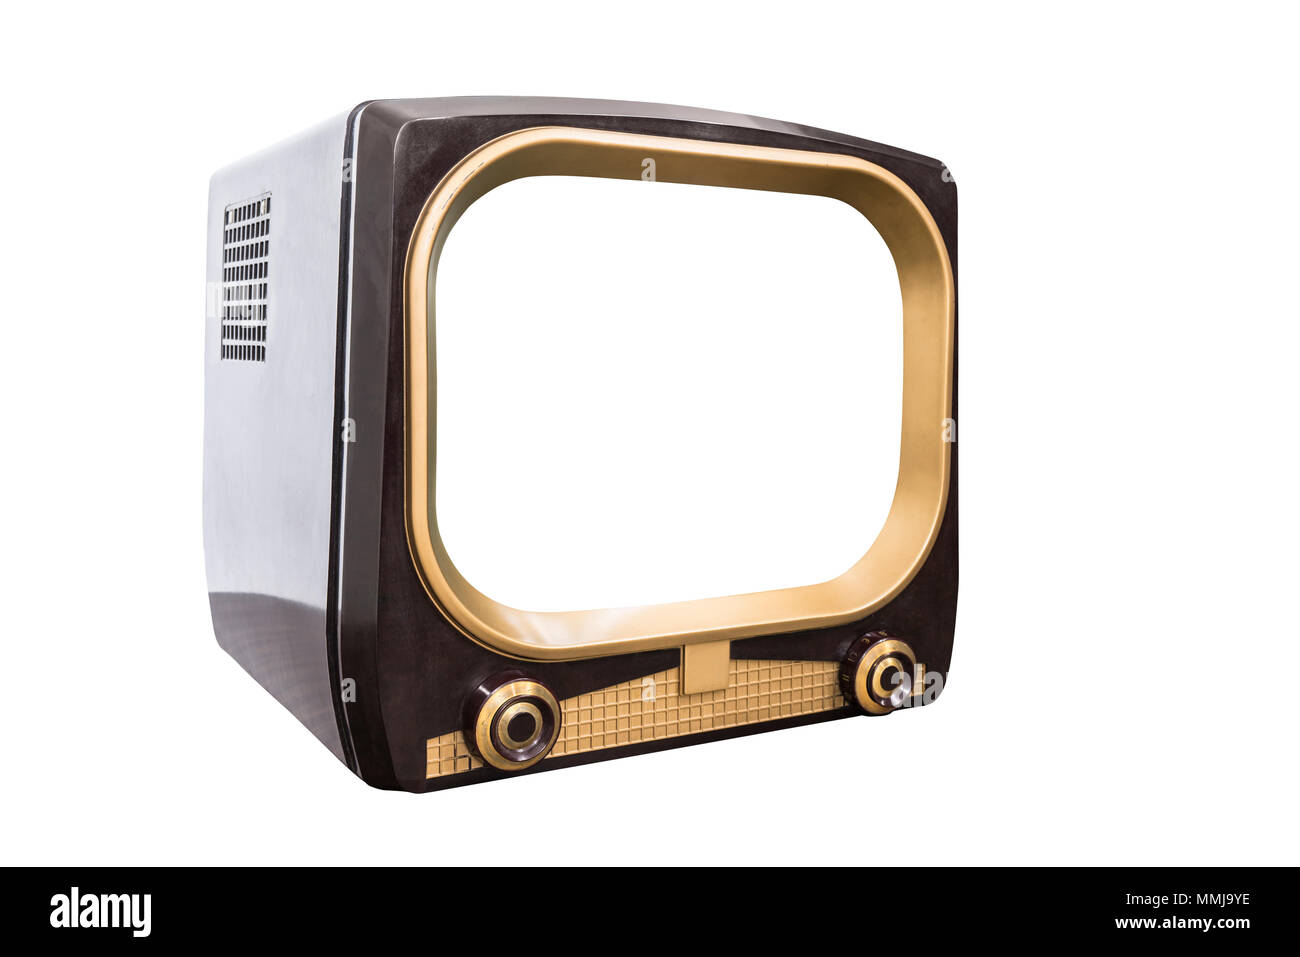 Retro 1950s television isolated on white with cut out screen and clipping path. - Stock Image